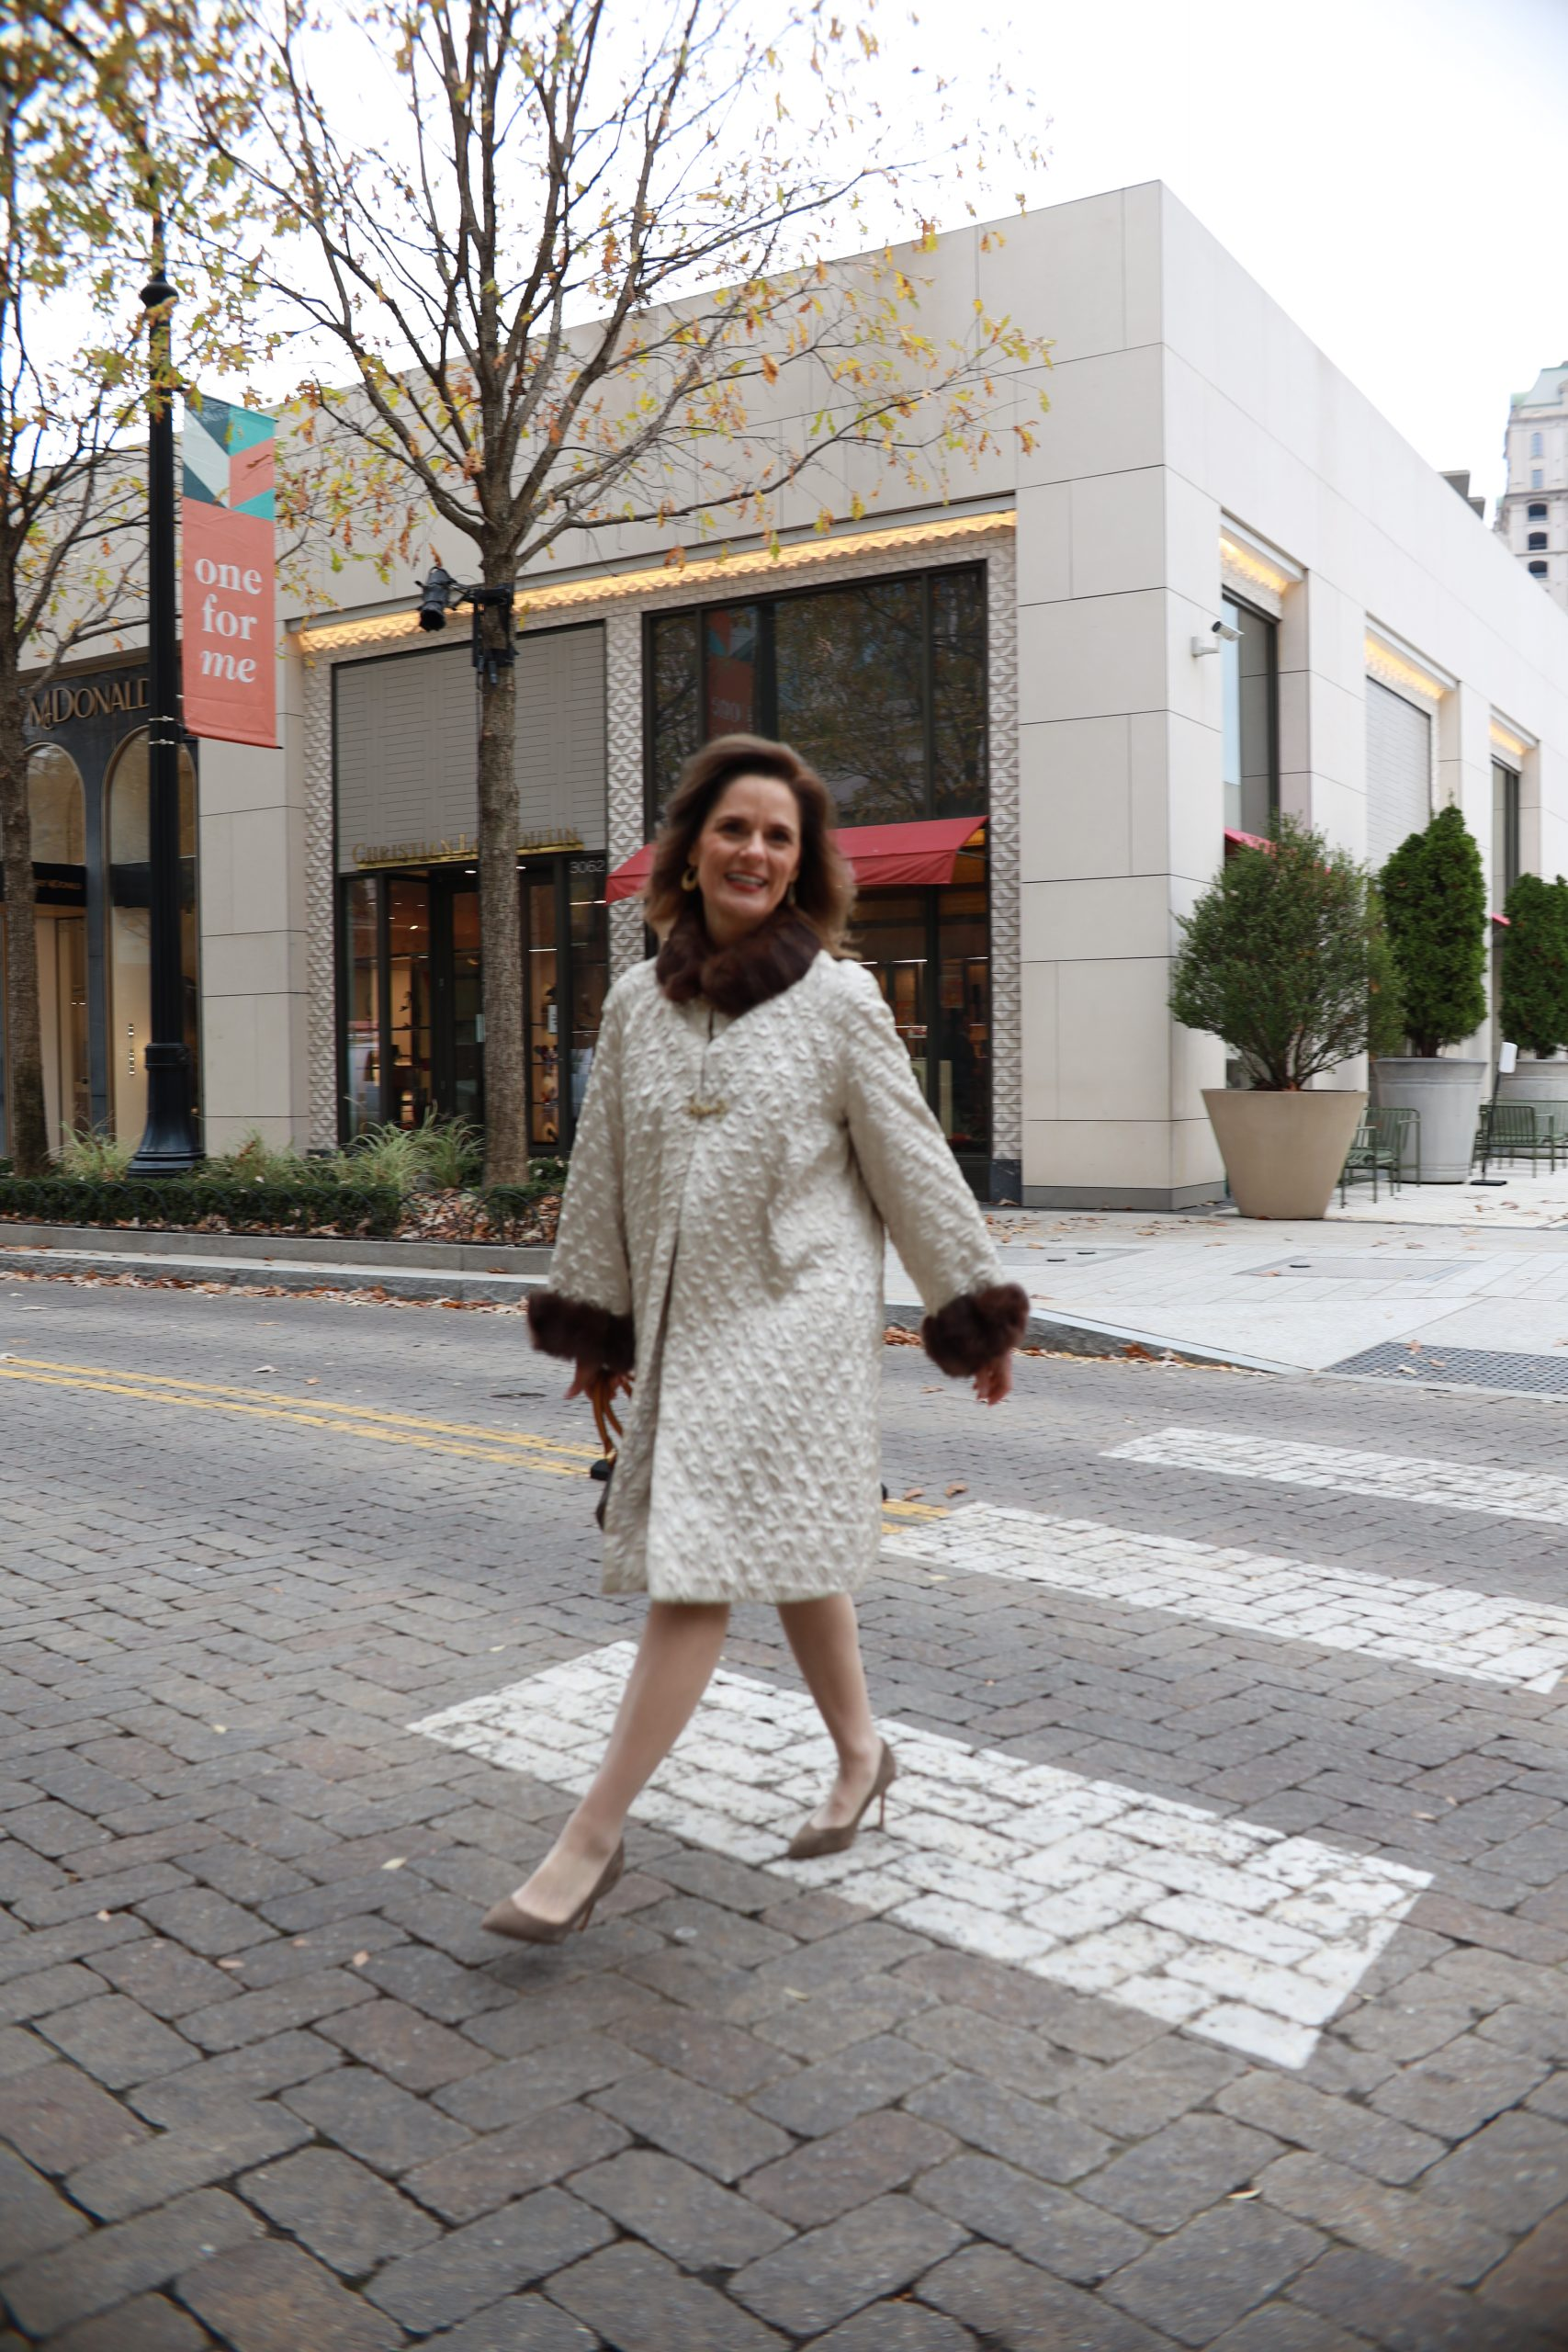 woman over 50 wearing a cream vintage fur trimmed coat walking across a street in a crosswalk in a shopping district